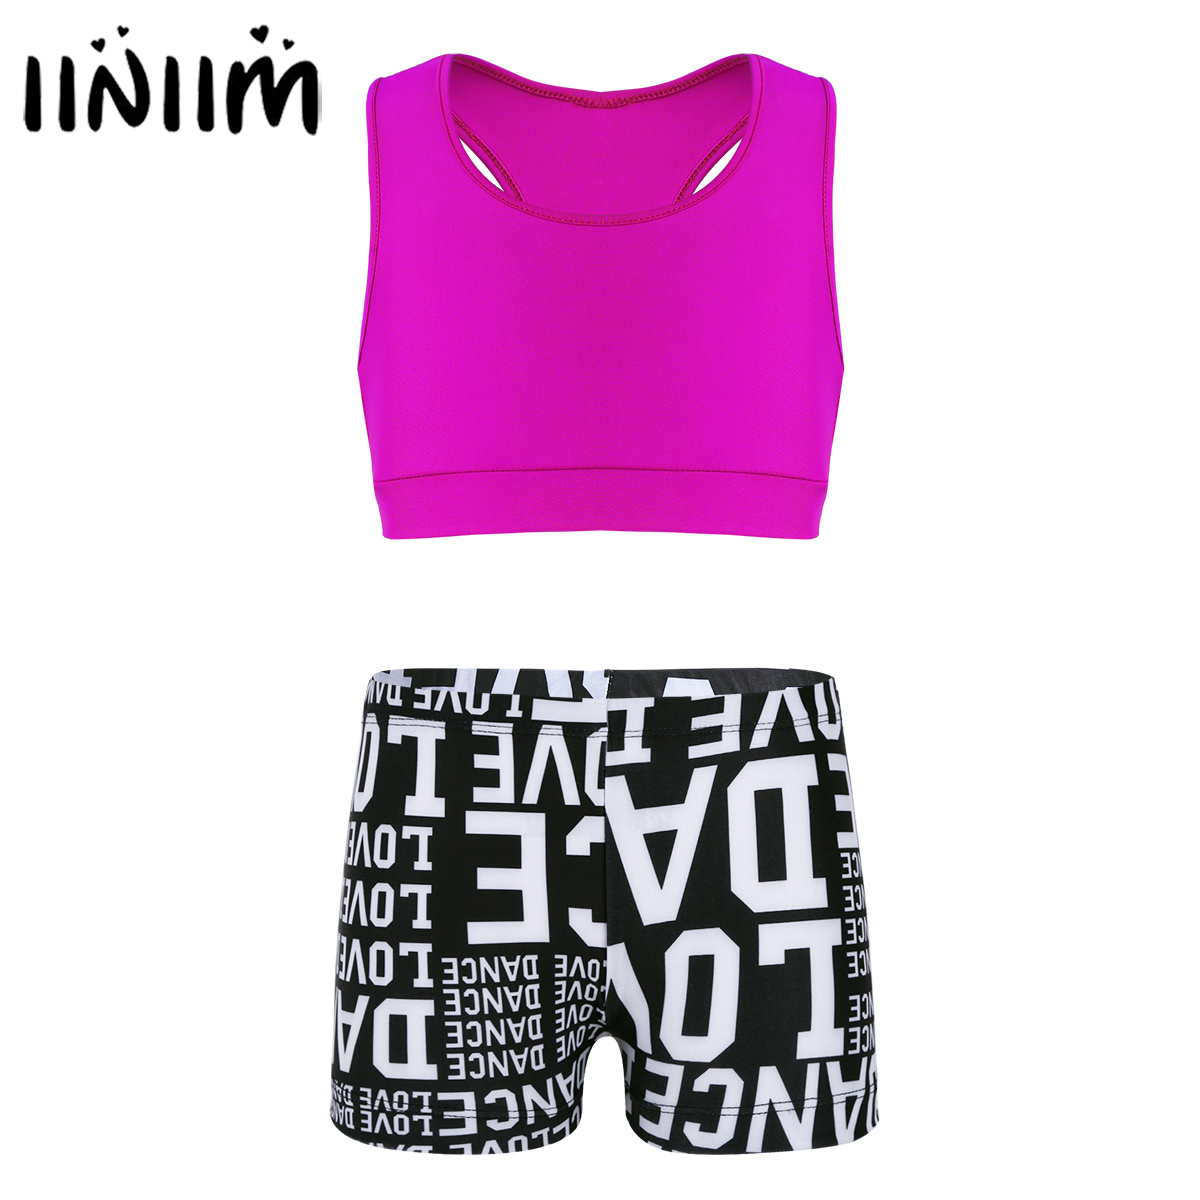 Girls Tankini Outfit Tank Top with Letters Printed Bottoms Set for Ballerina Leotard Dance Kids Body Shorts Outfit Party Sets